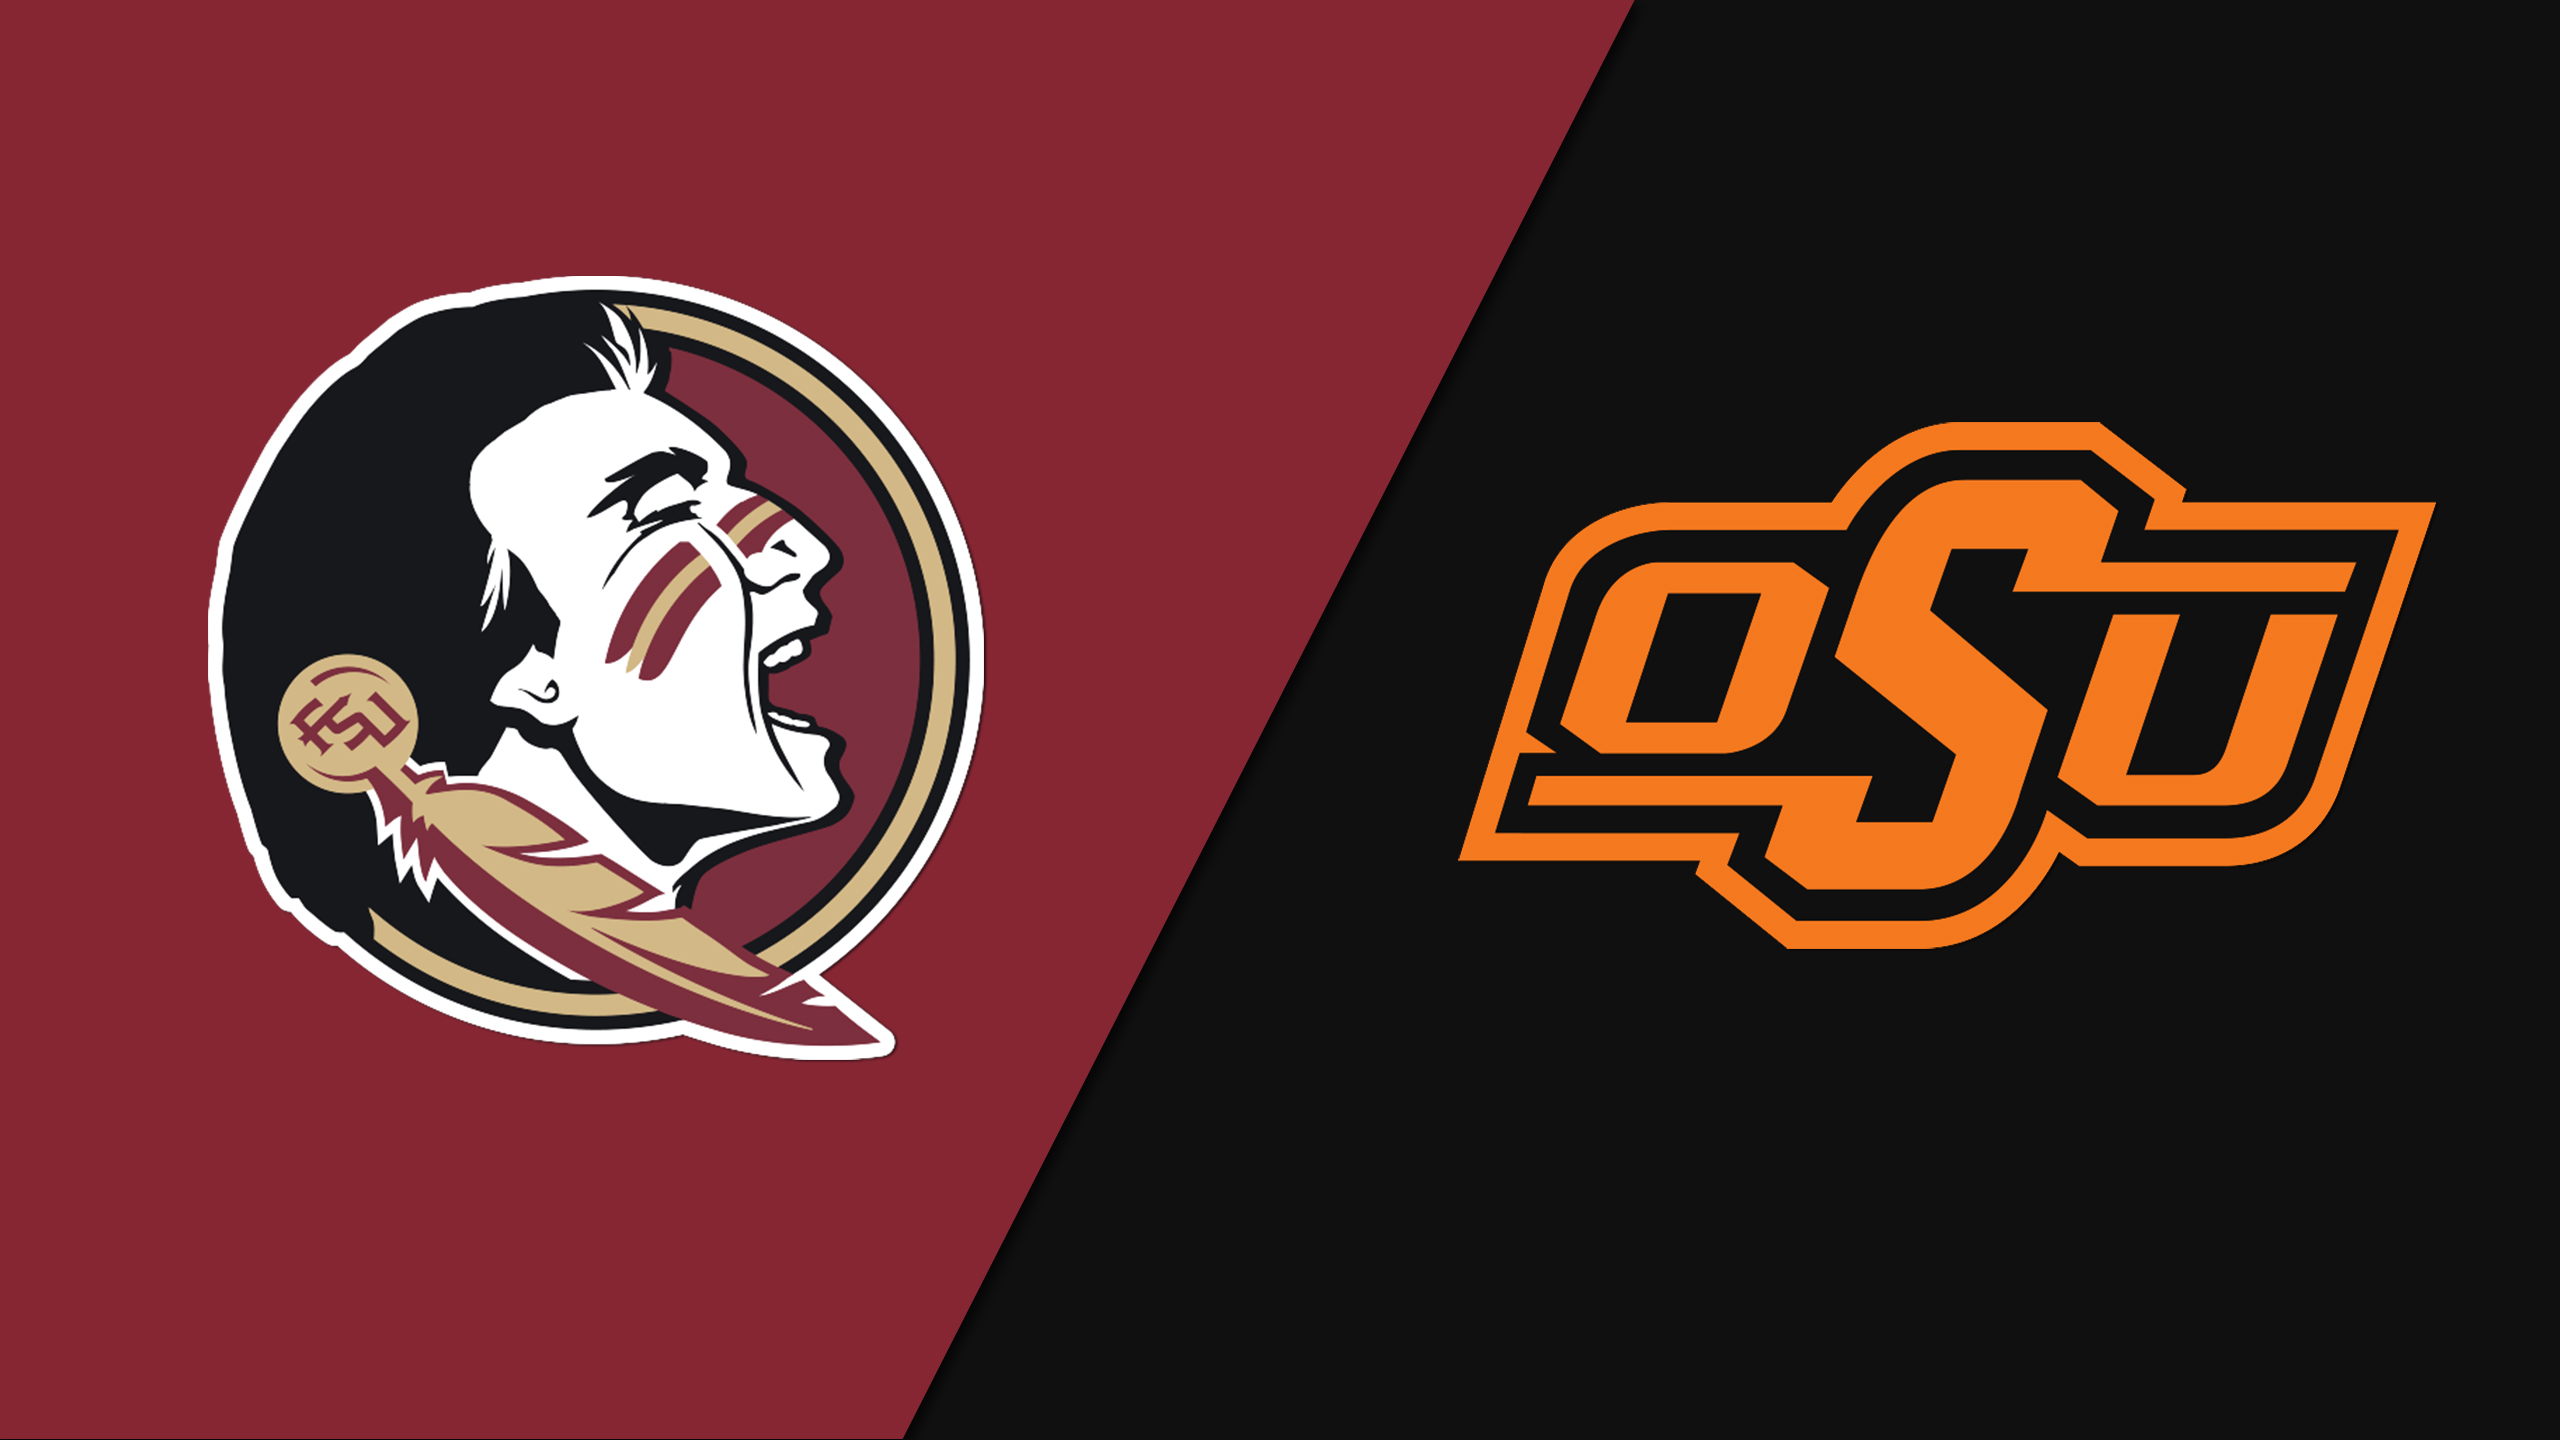 Florida State vs. Oklahoma State (Site 1 / Game 2)